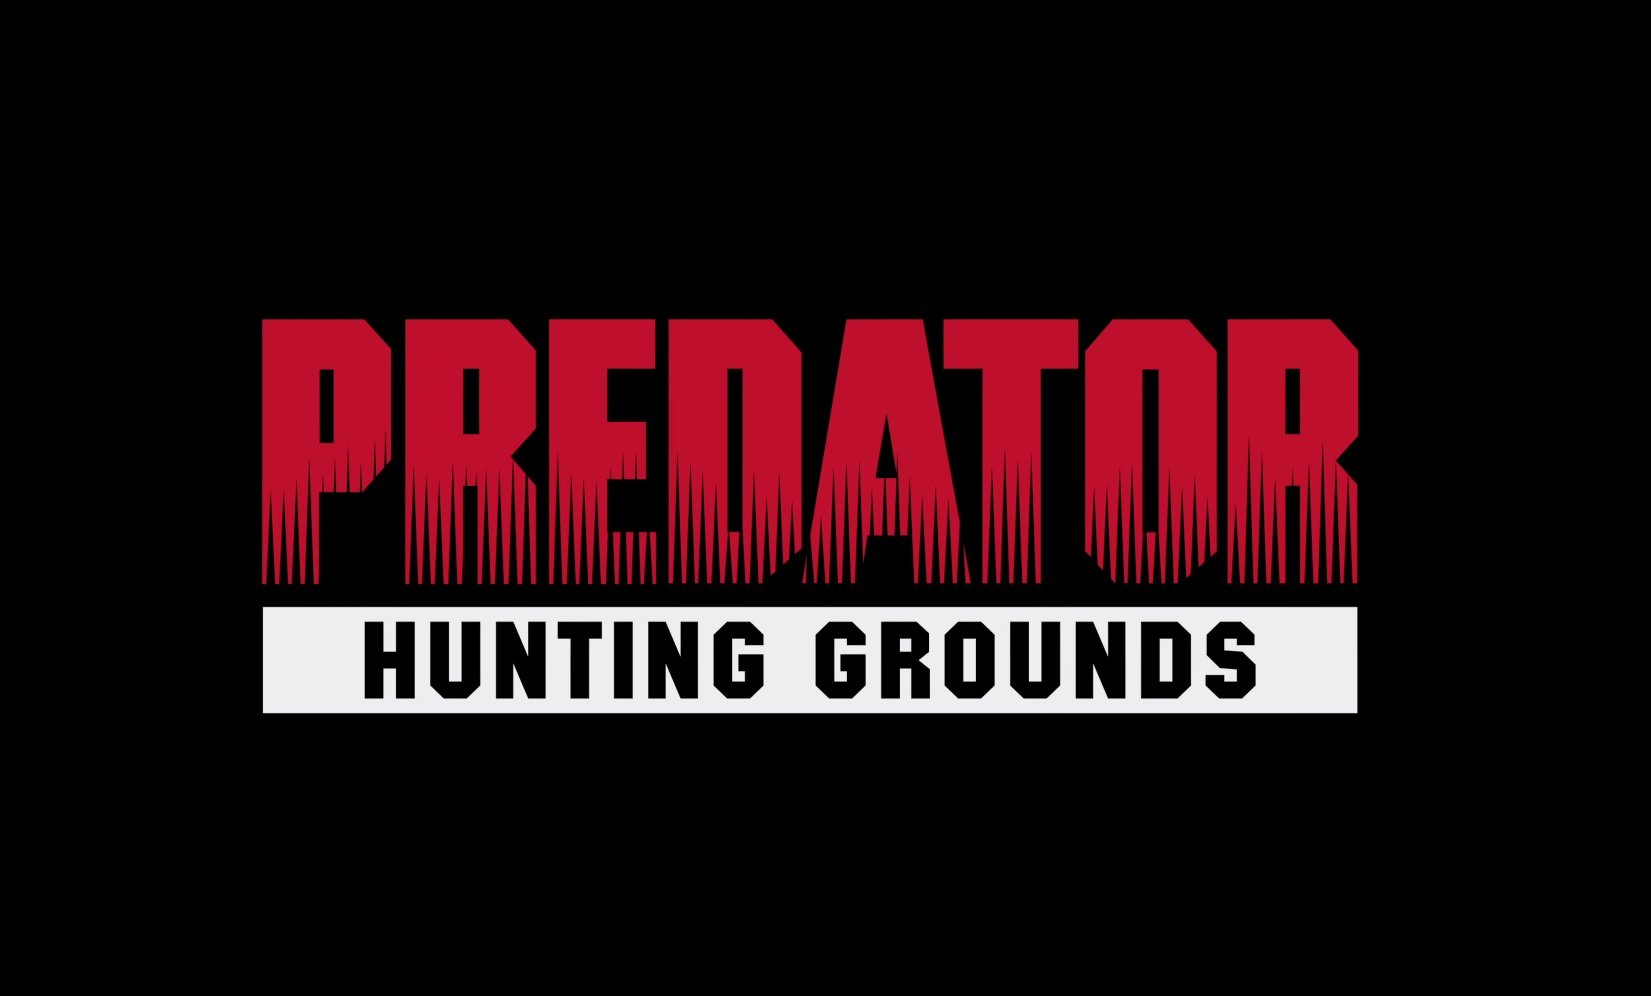 A multiplayer Predator game has been announced by Sony and is scheduled to release in 2020.